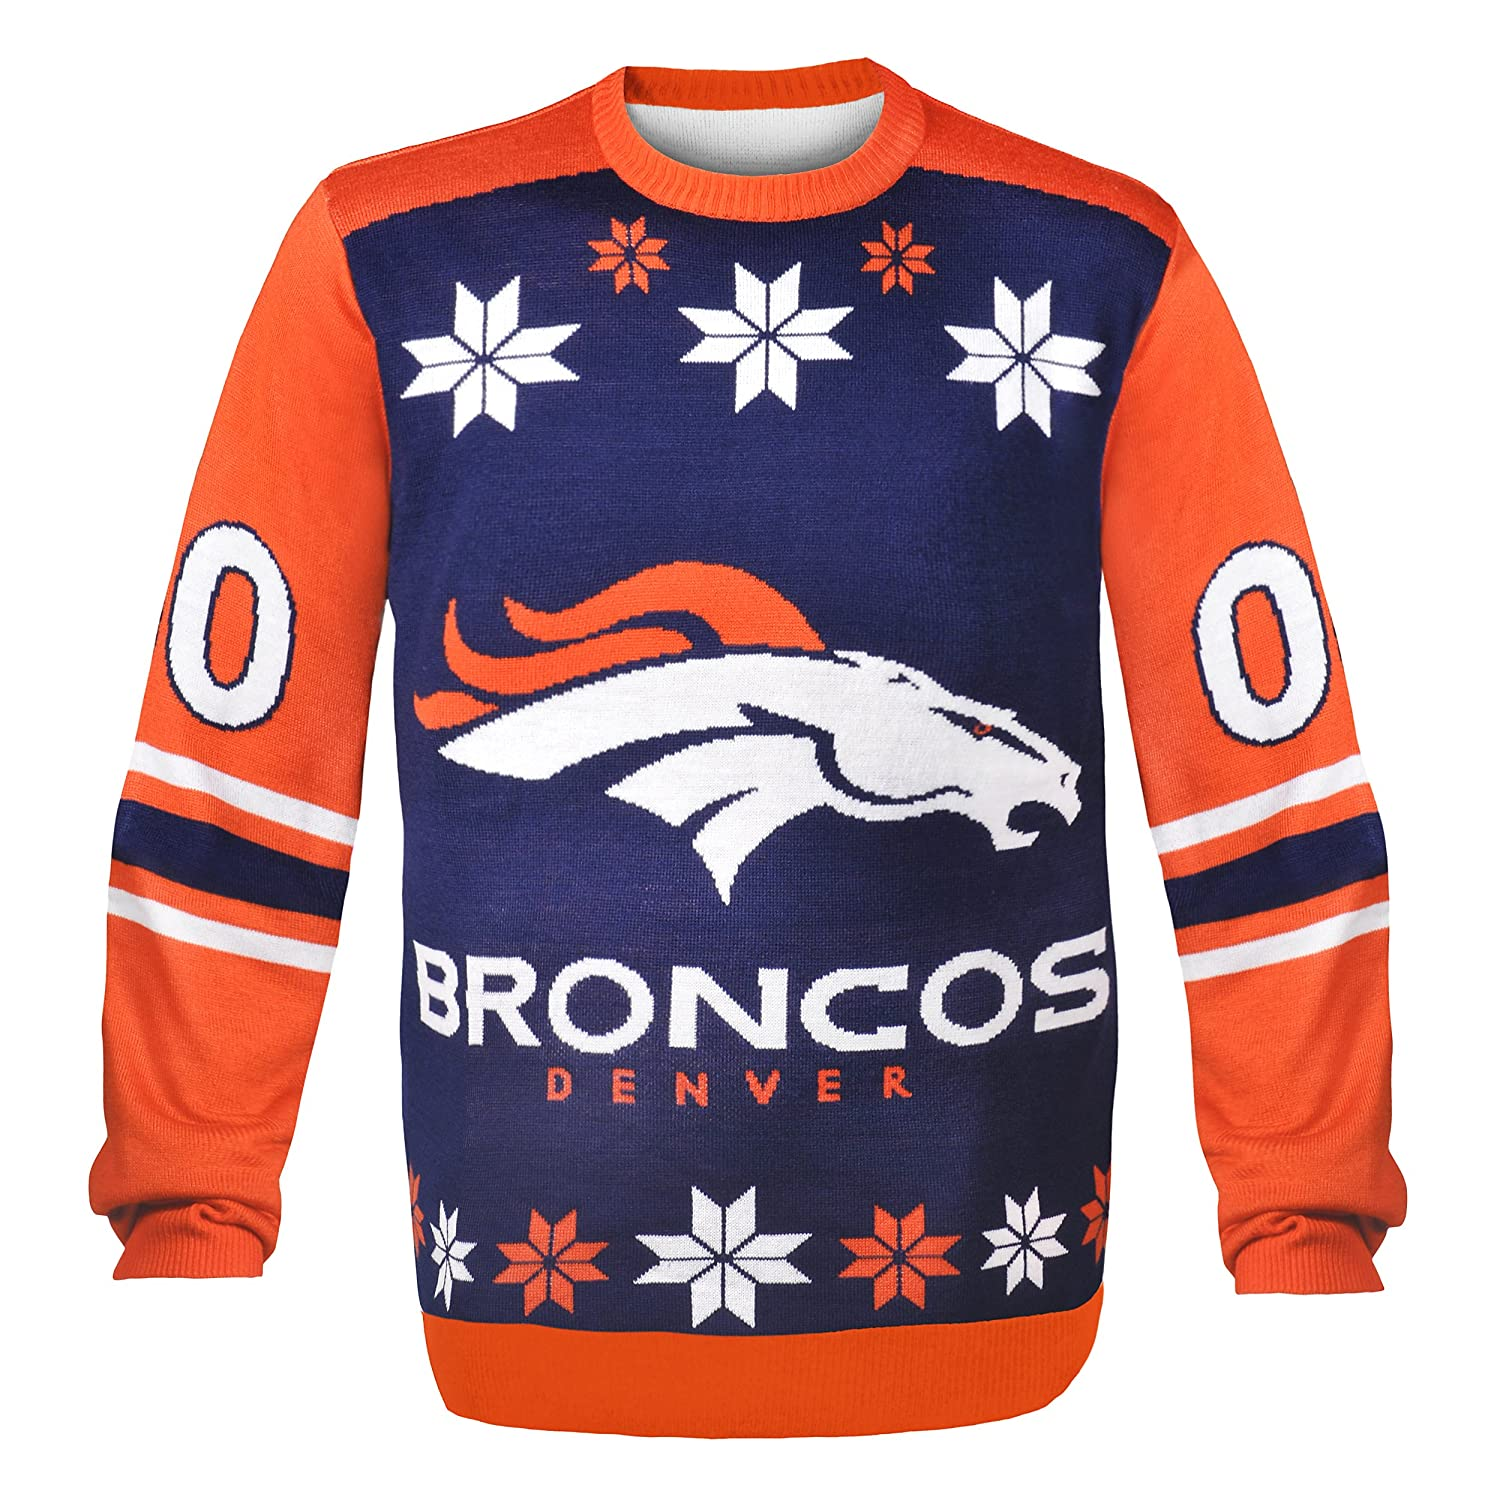 Amazon.com : NFL Jersey Sweater : Sports & Outdoors